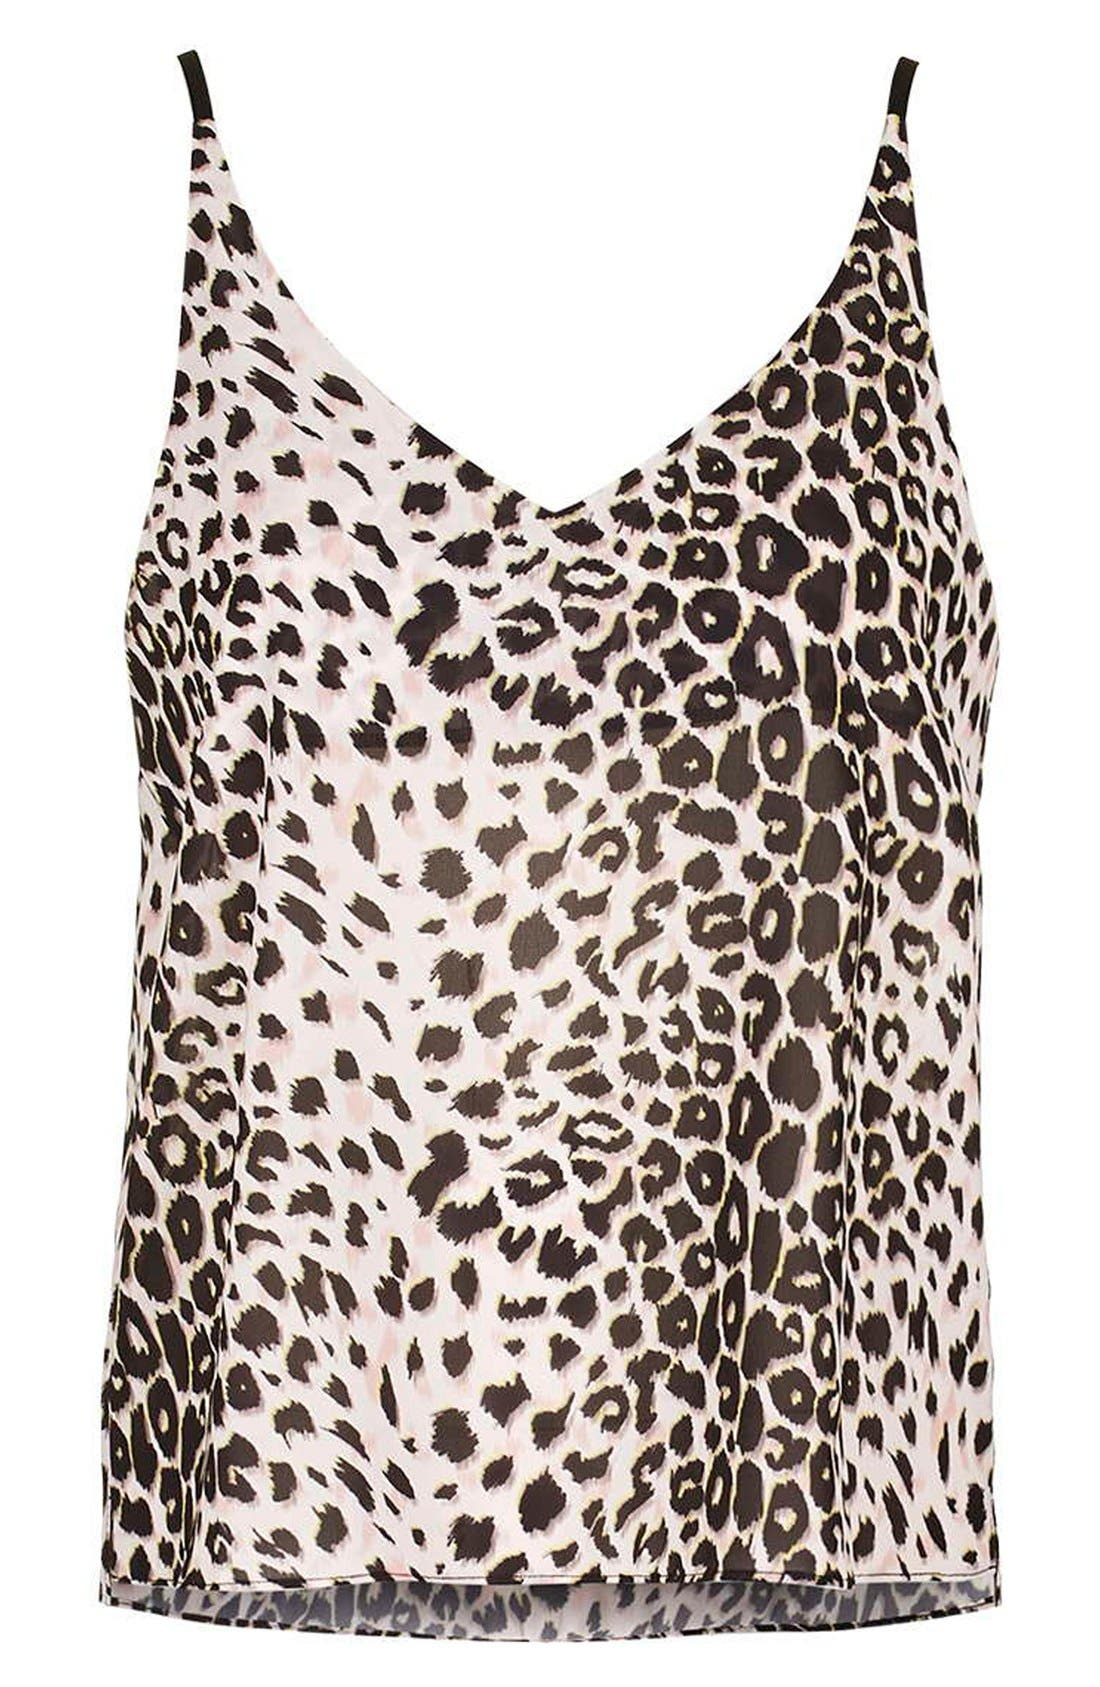 TOPSHOP,                             Leopard Print Camisole,                             Alternate thumbnail 3, color,                             650